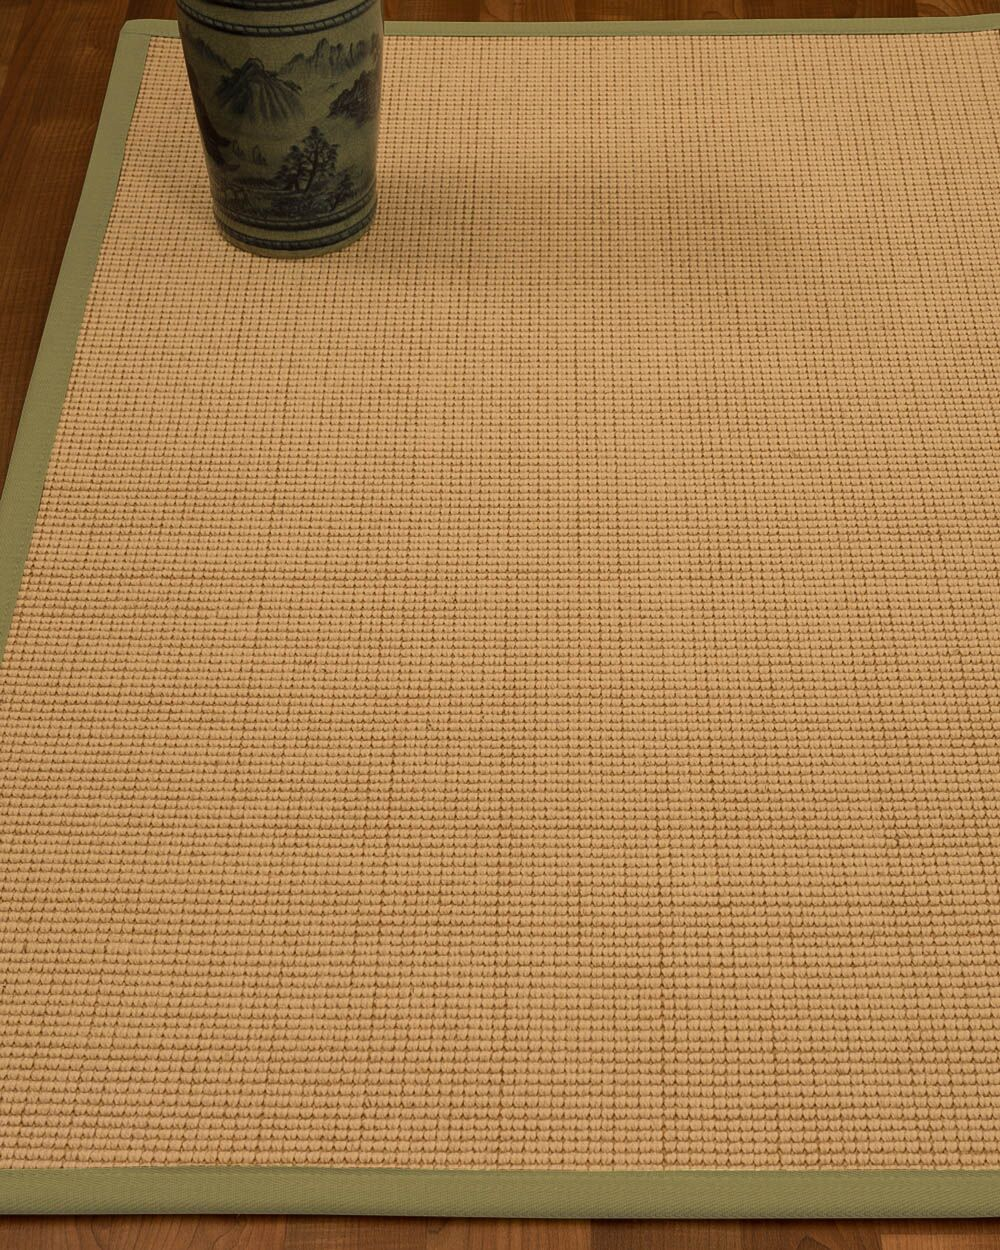 Chaves Border Hand-Woven Wool Beige/Natural Area Rug Rug Size: Rectangle 12' x 15', Rug Pad Included: Yes